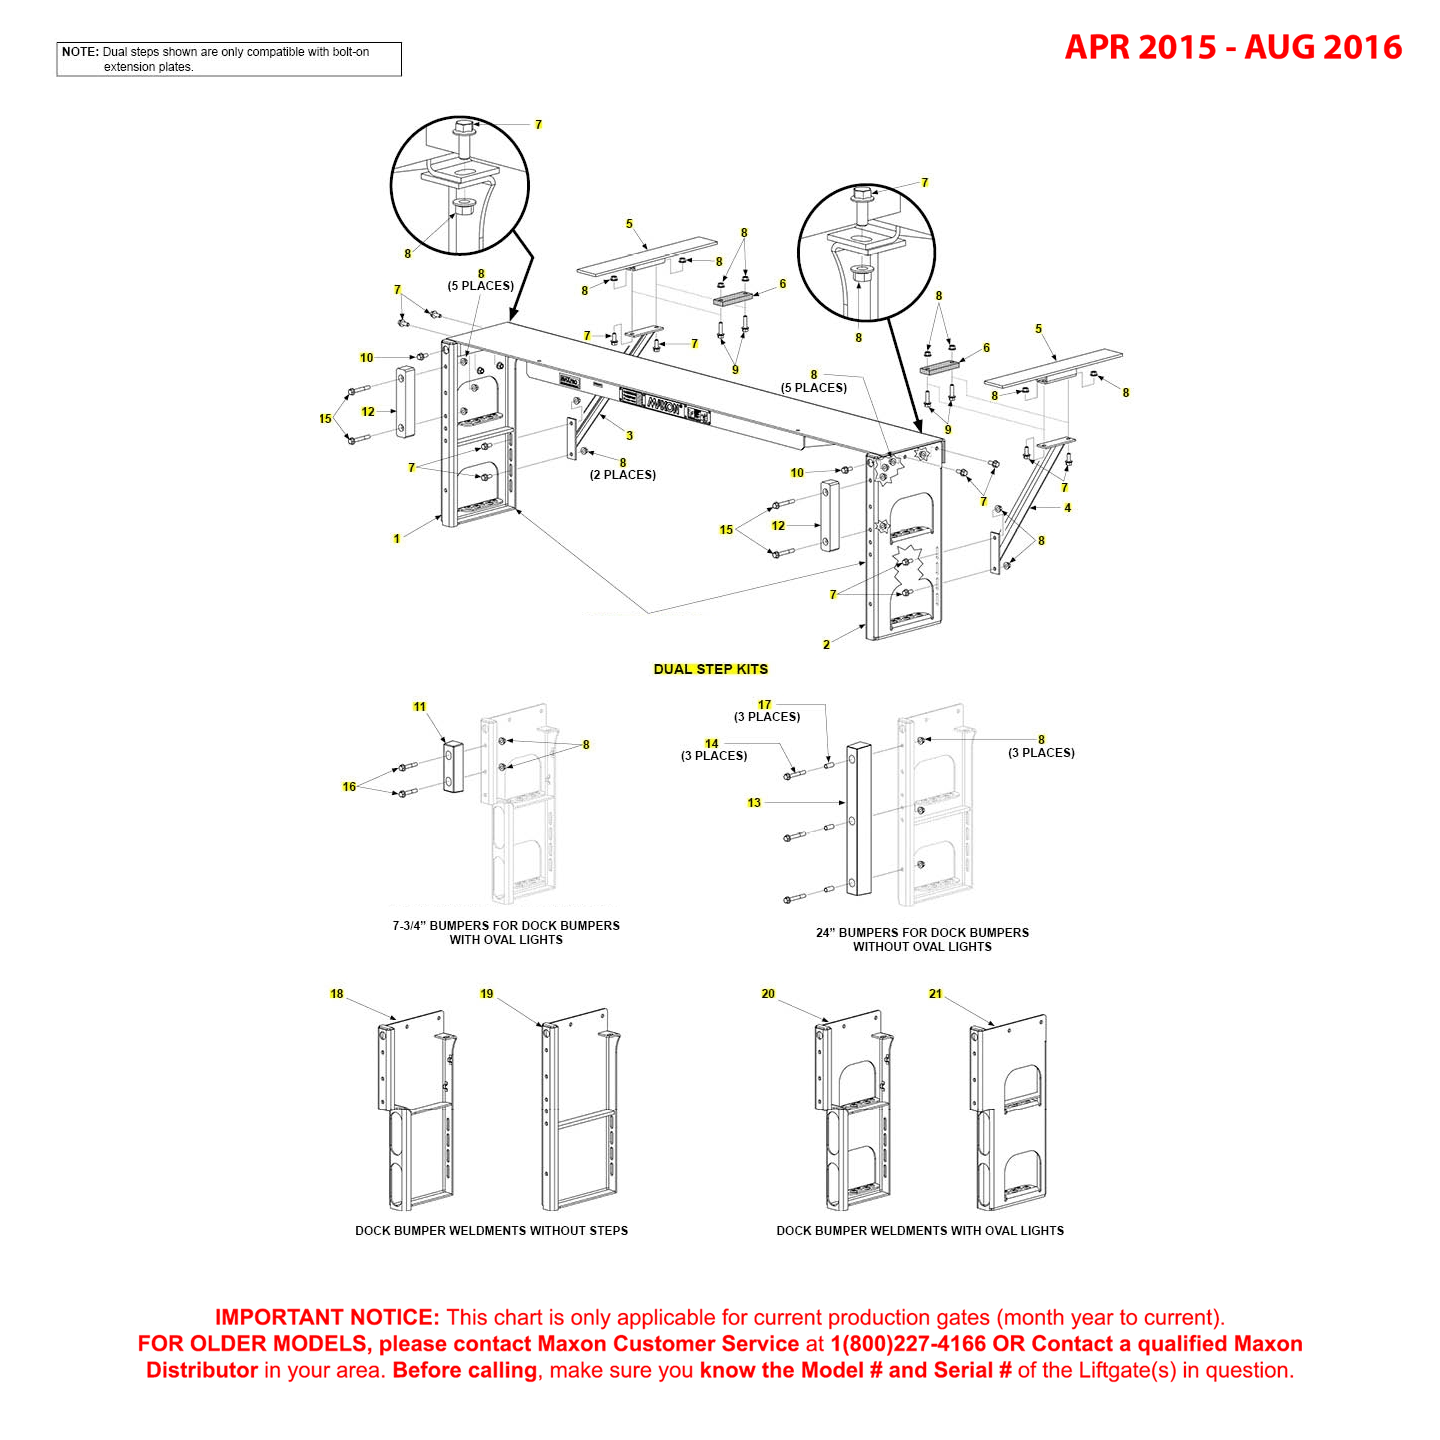 GPT (Apr 2015 - Aug 2016) Dual Step Kits Diagram